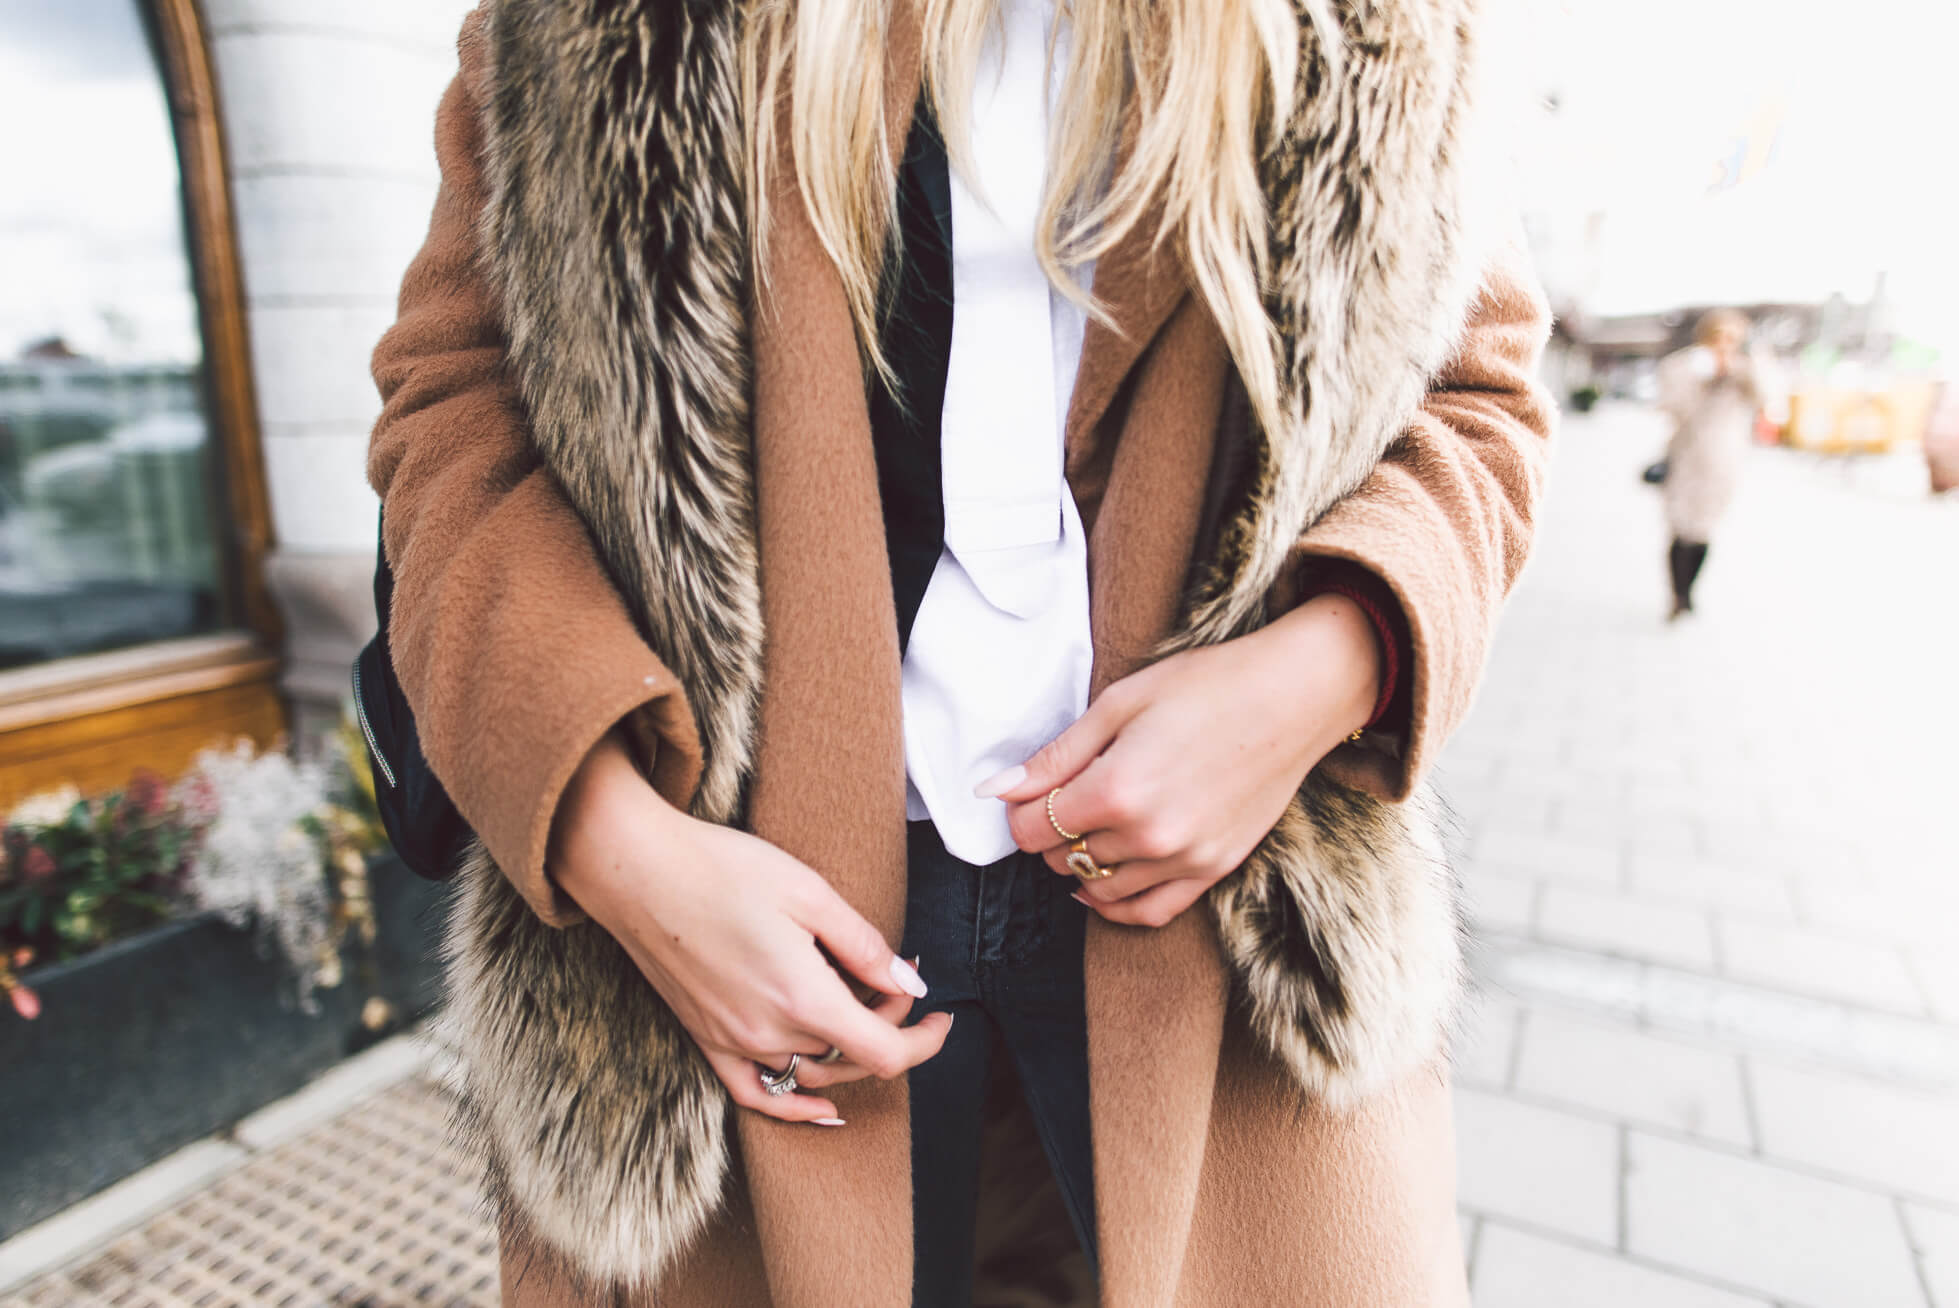 janni-deler-city-vibes-outfitDSC_8647